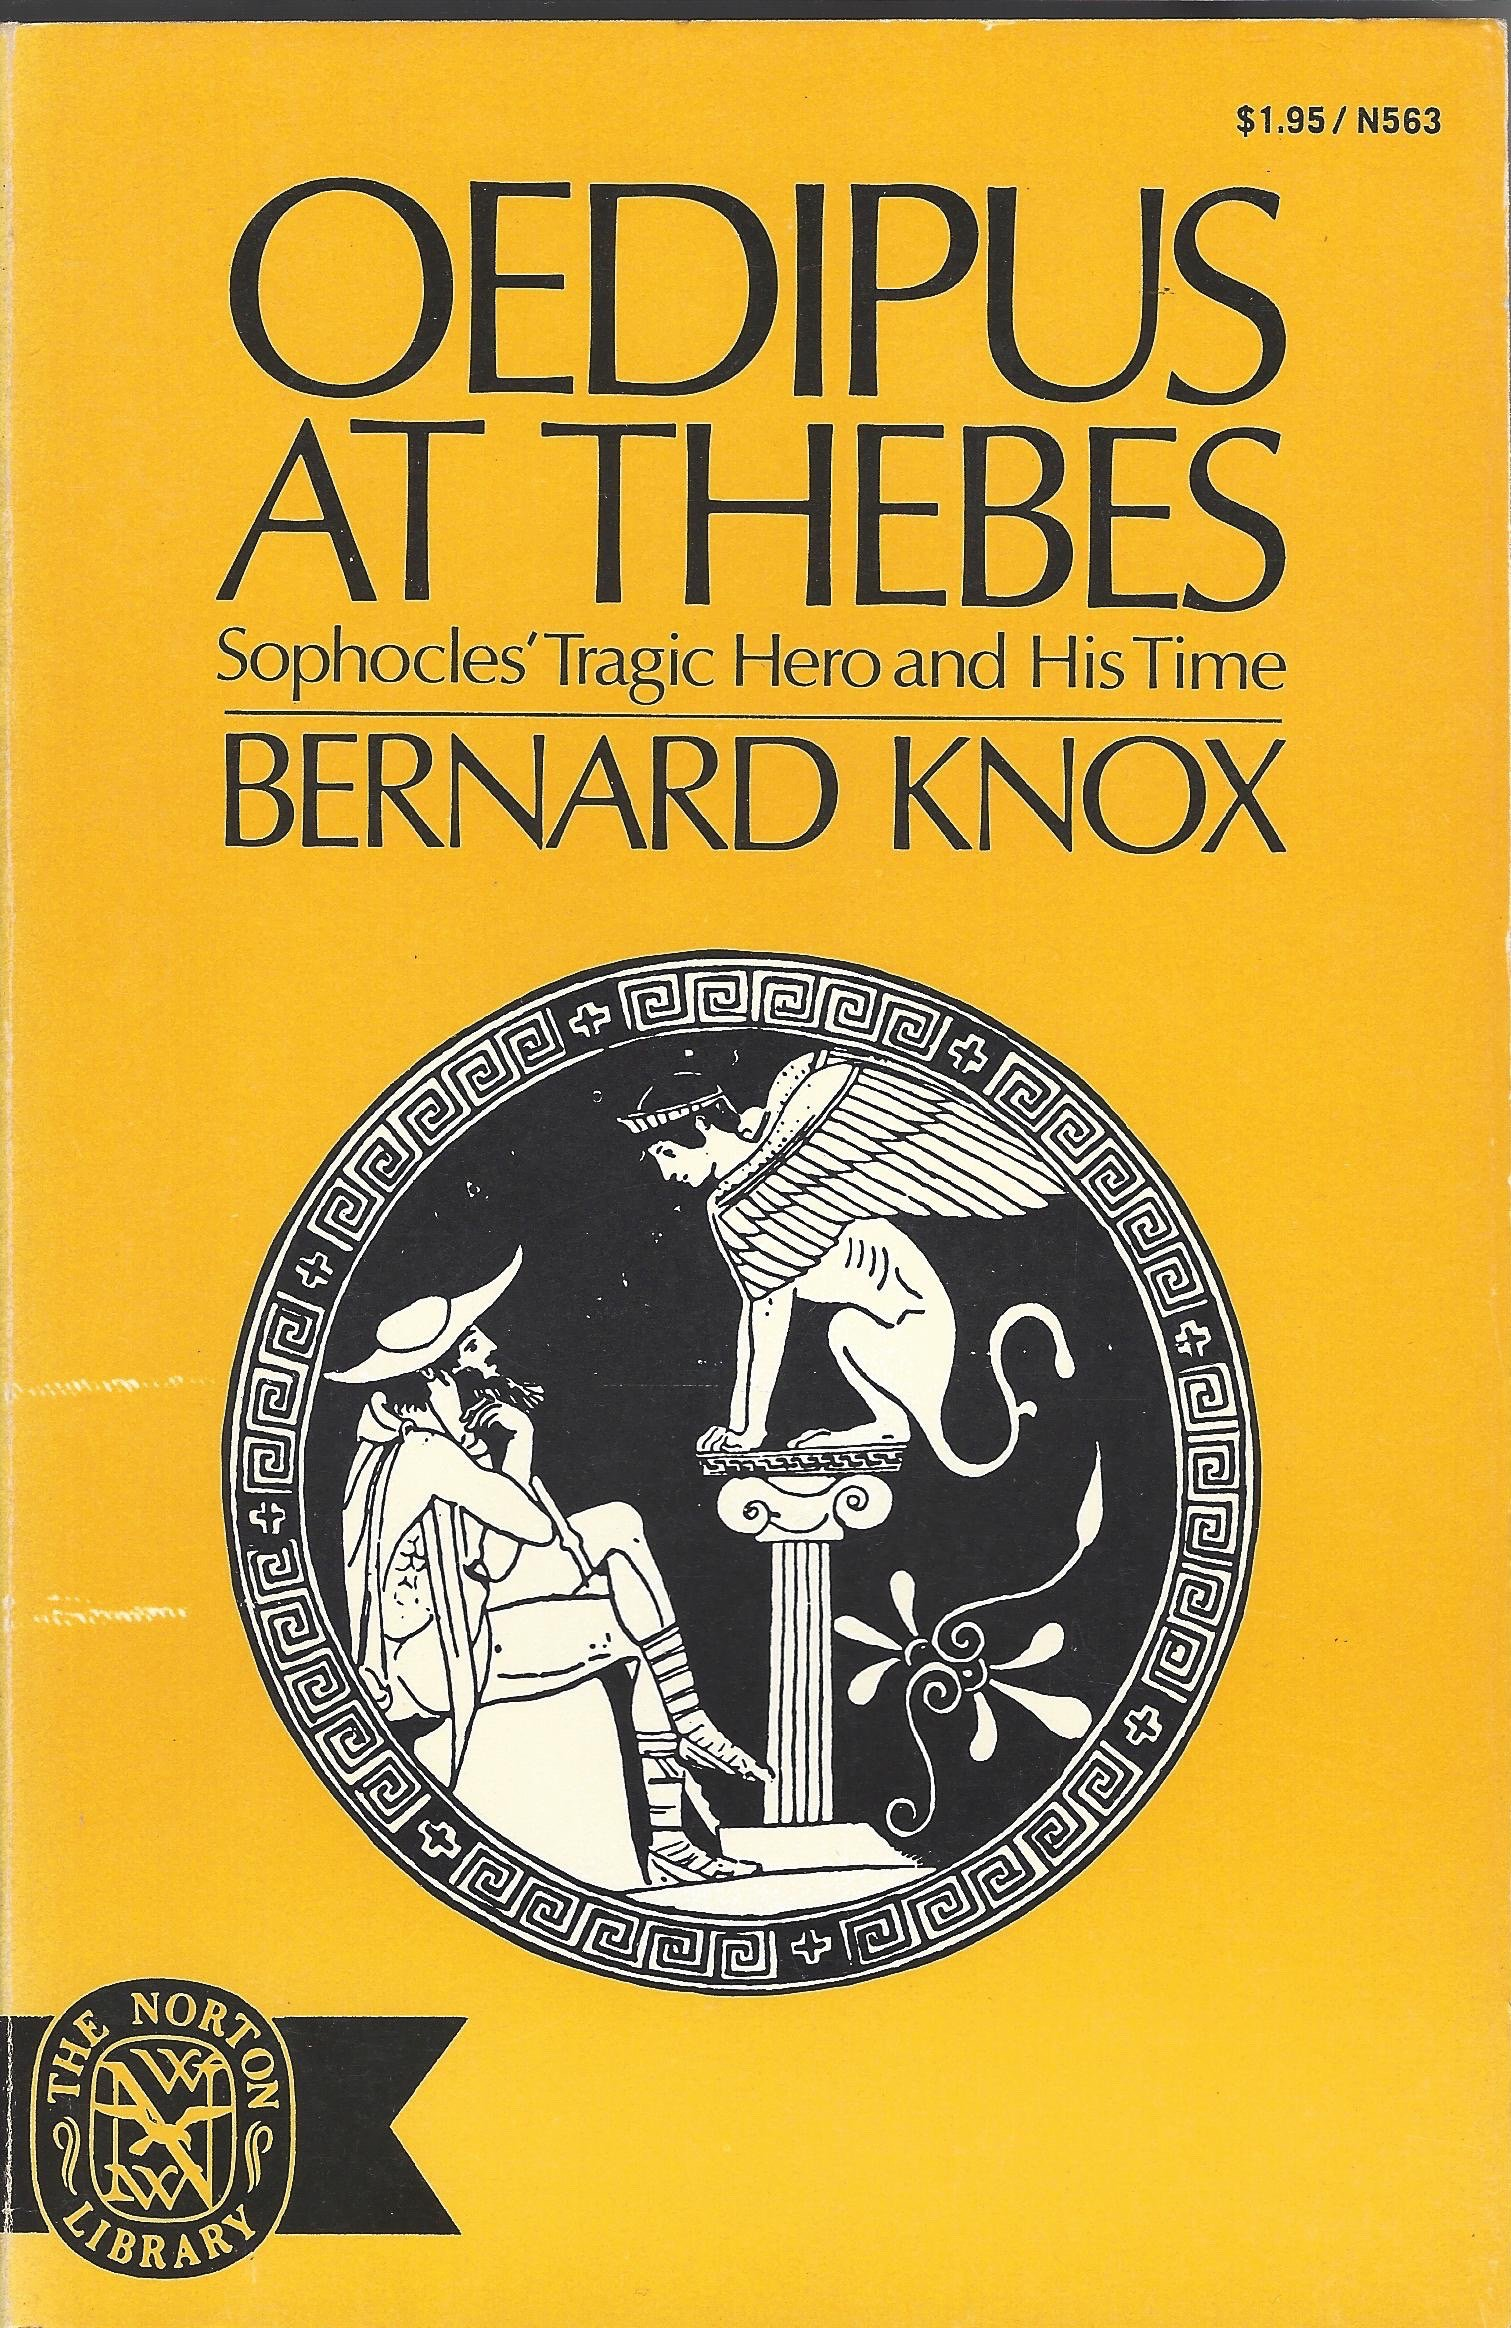 Oedipus at Thebes Sophocles Tragic Hero and His Time